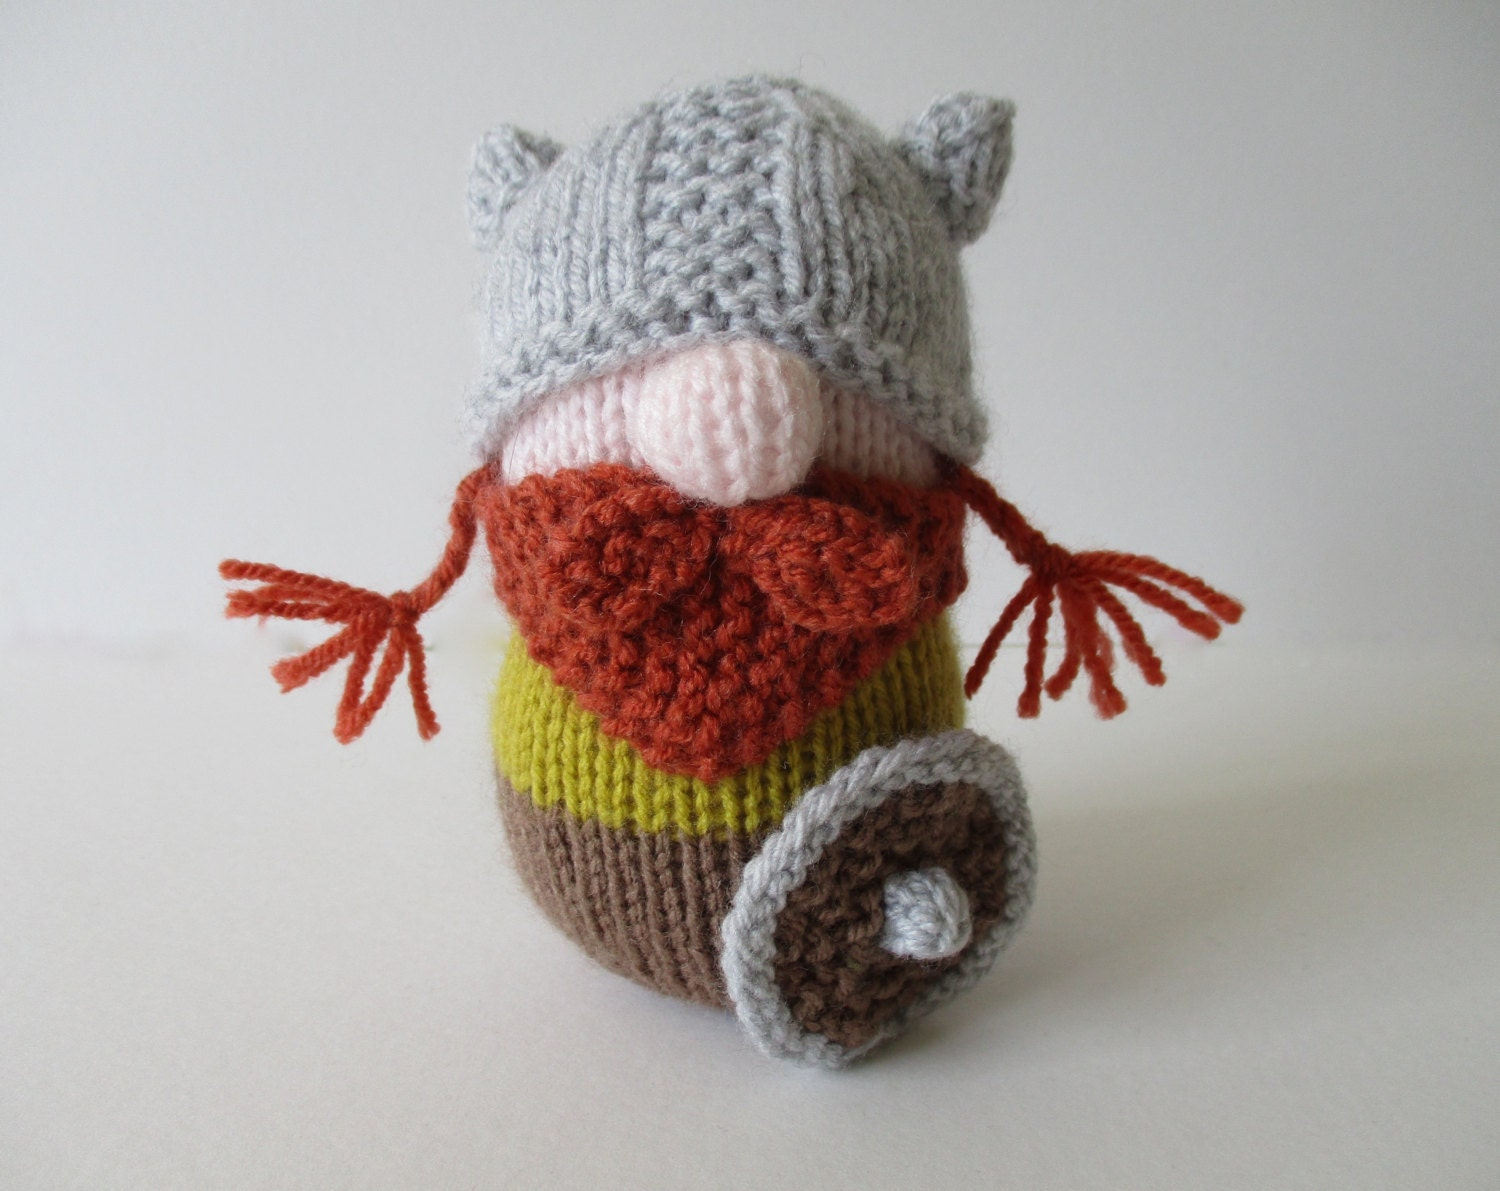 Erik the Viking toy knitting patterns from fluffandfuzz on Etsy Studio